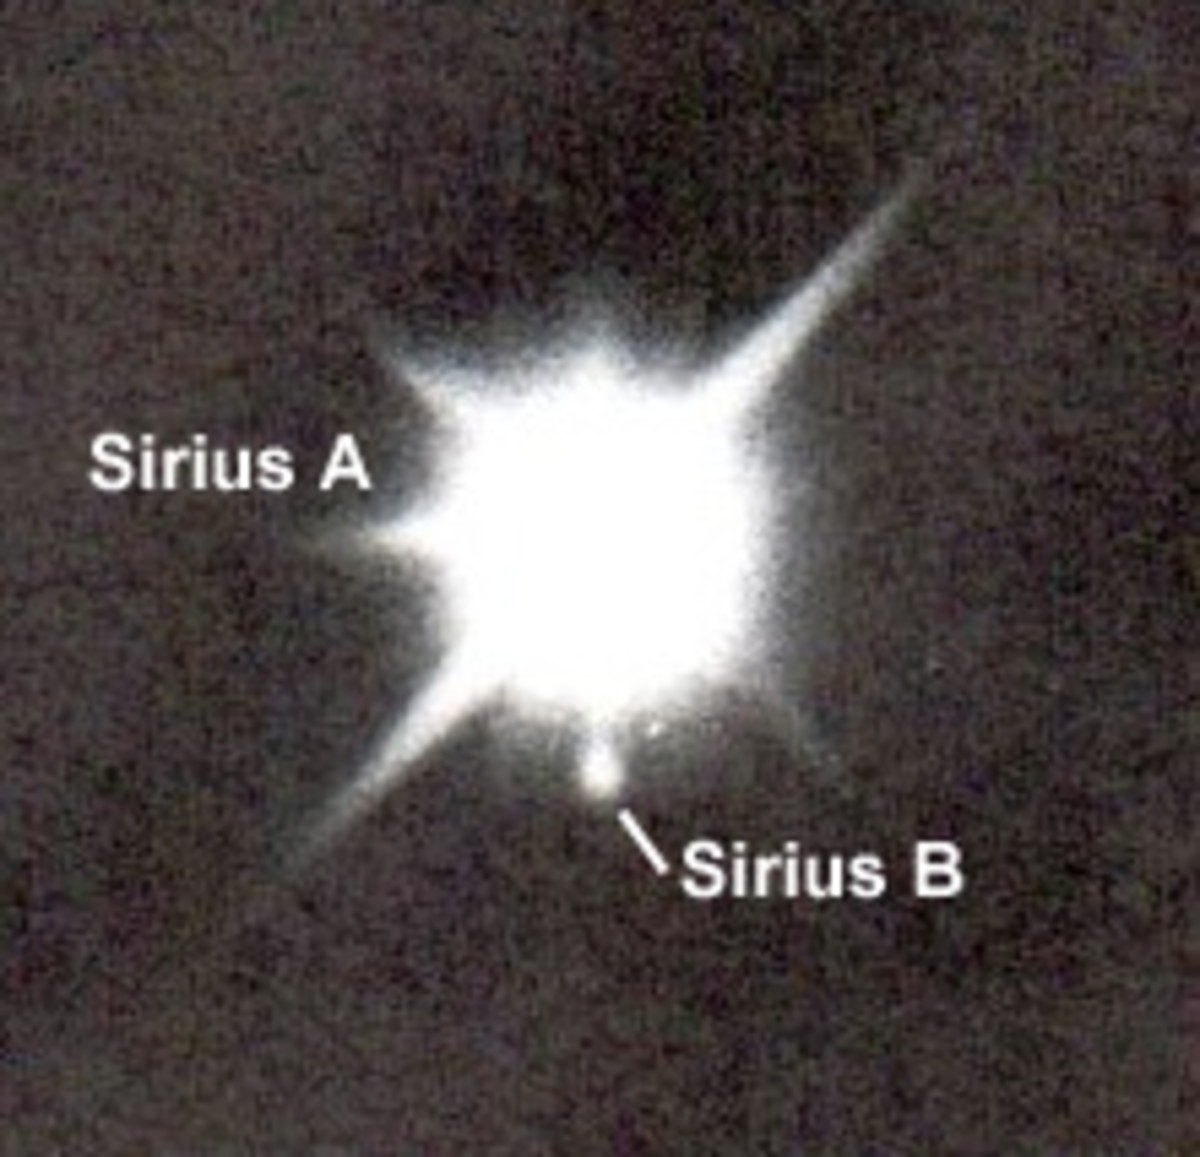 Sirius is 23 time more luninous and about twice the mass and diammeter  of the Sun. It is farthest away from the Earth than the Sun. but not too far, cosmically speaking. At a mere 8.5 light years away, Sirius seems so bright in part because it is th